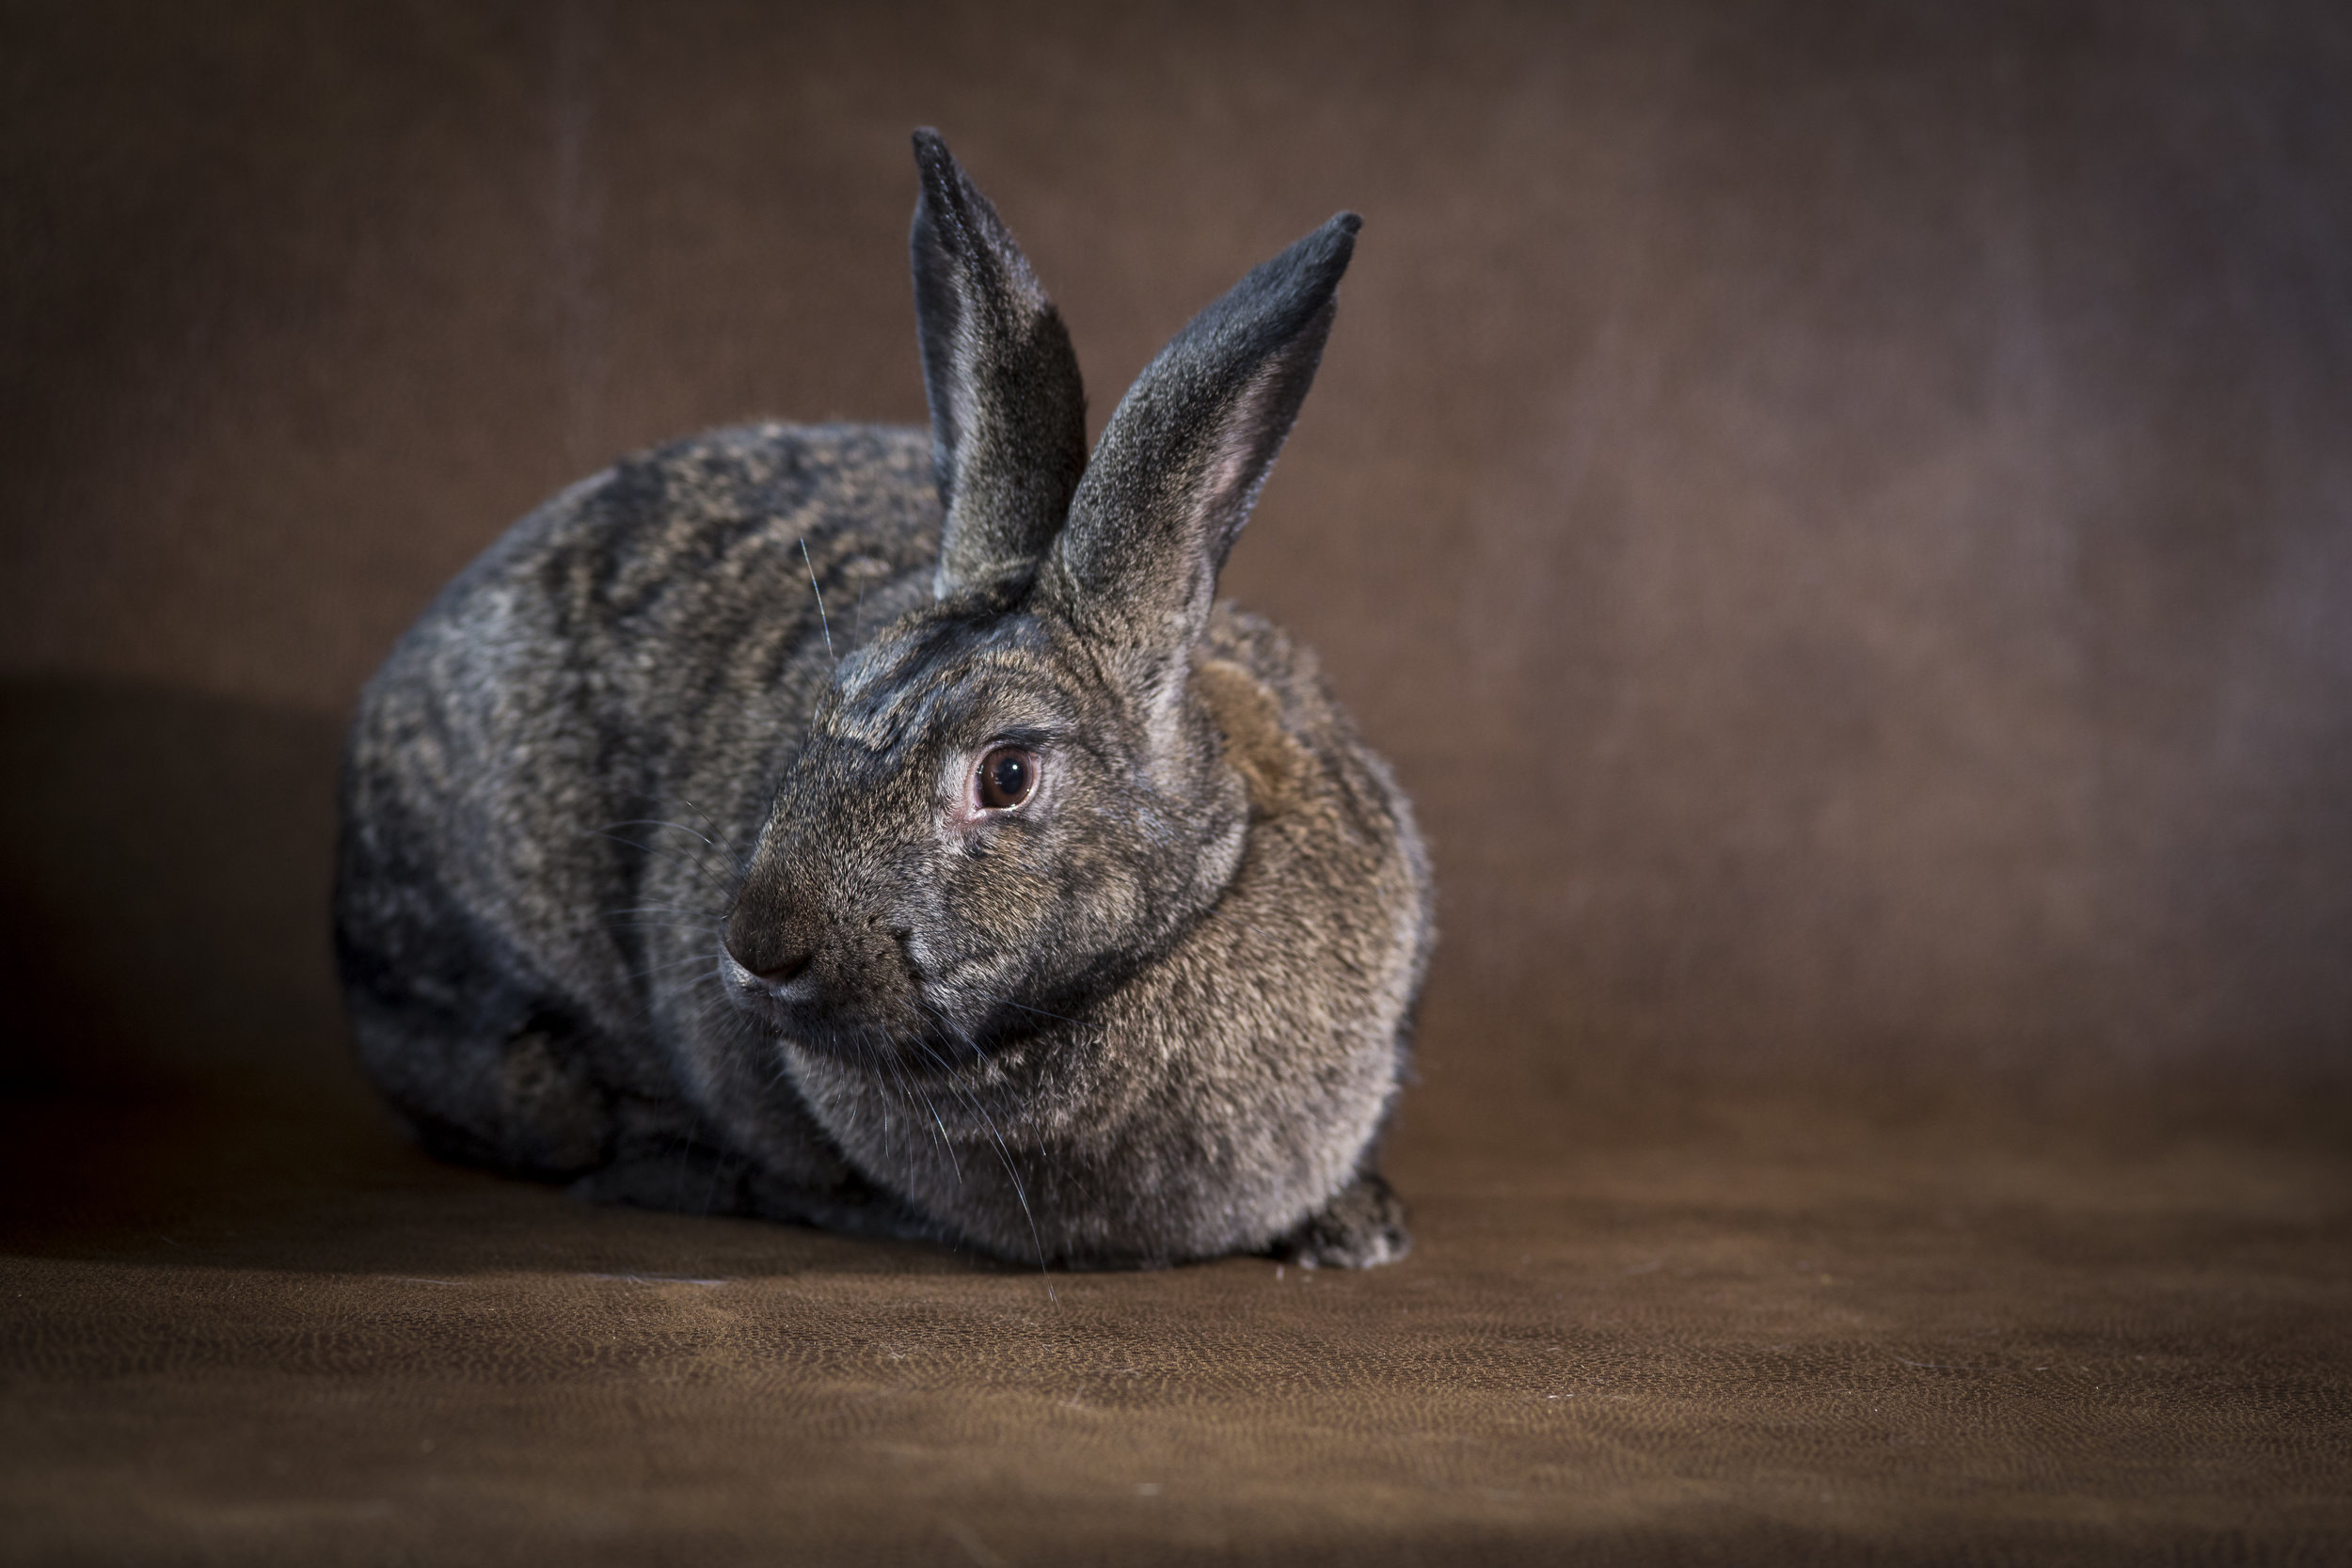 35 beautiful tan and black bunny rabbit pet photography studio session on worn leather fabric.jpg